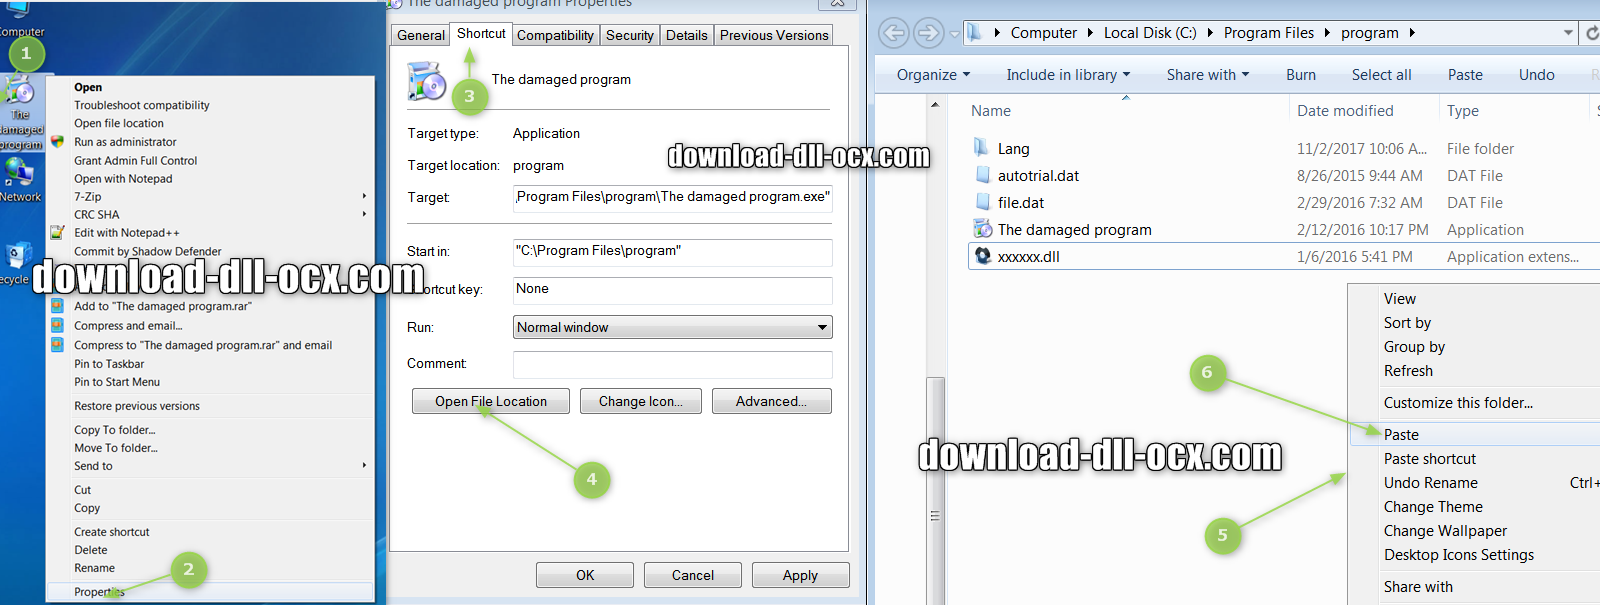 how to install Pango-indic-fc.dll file? for fix missing